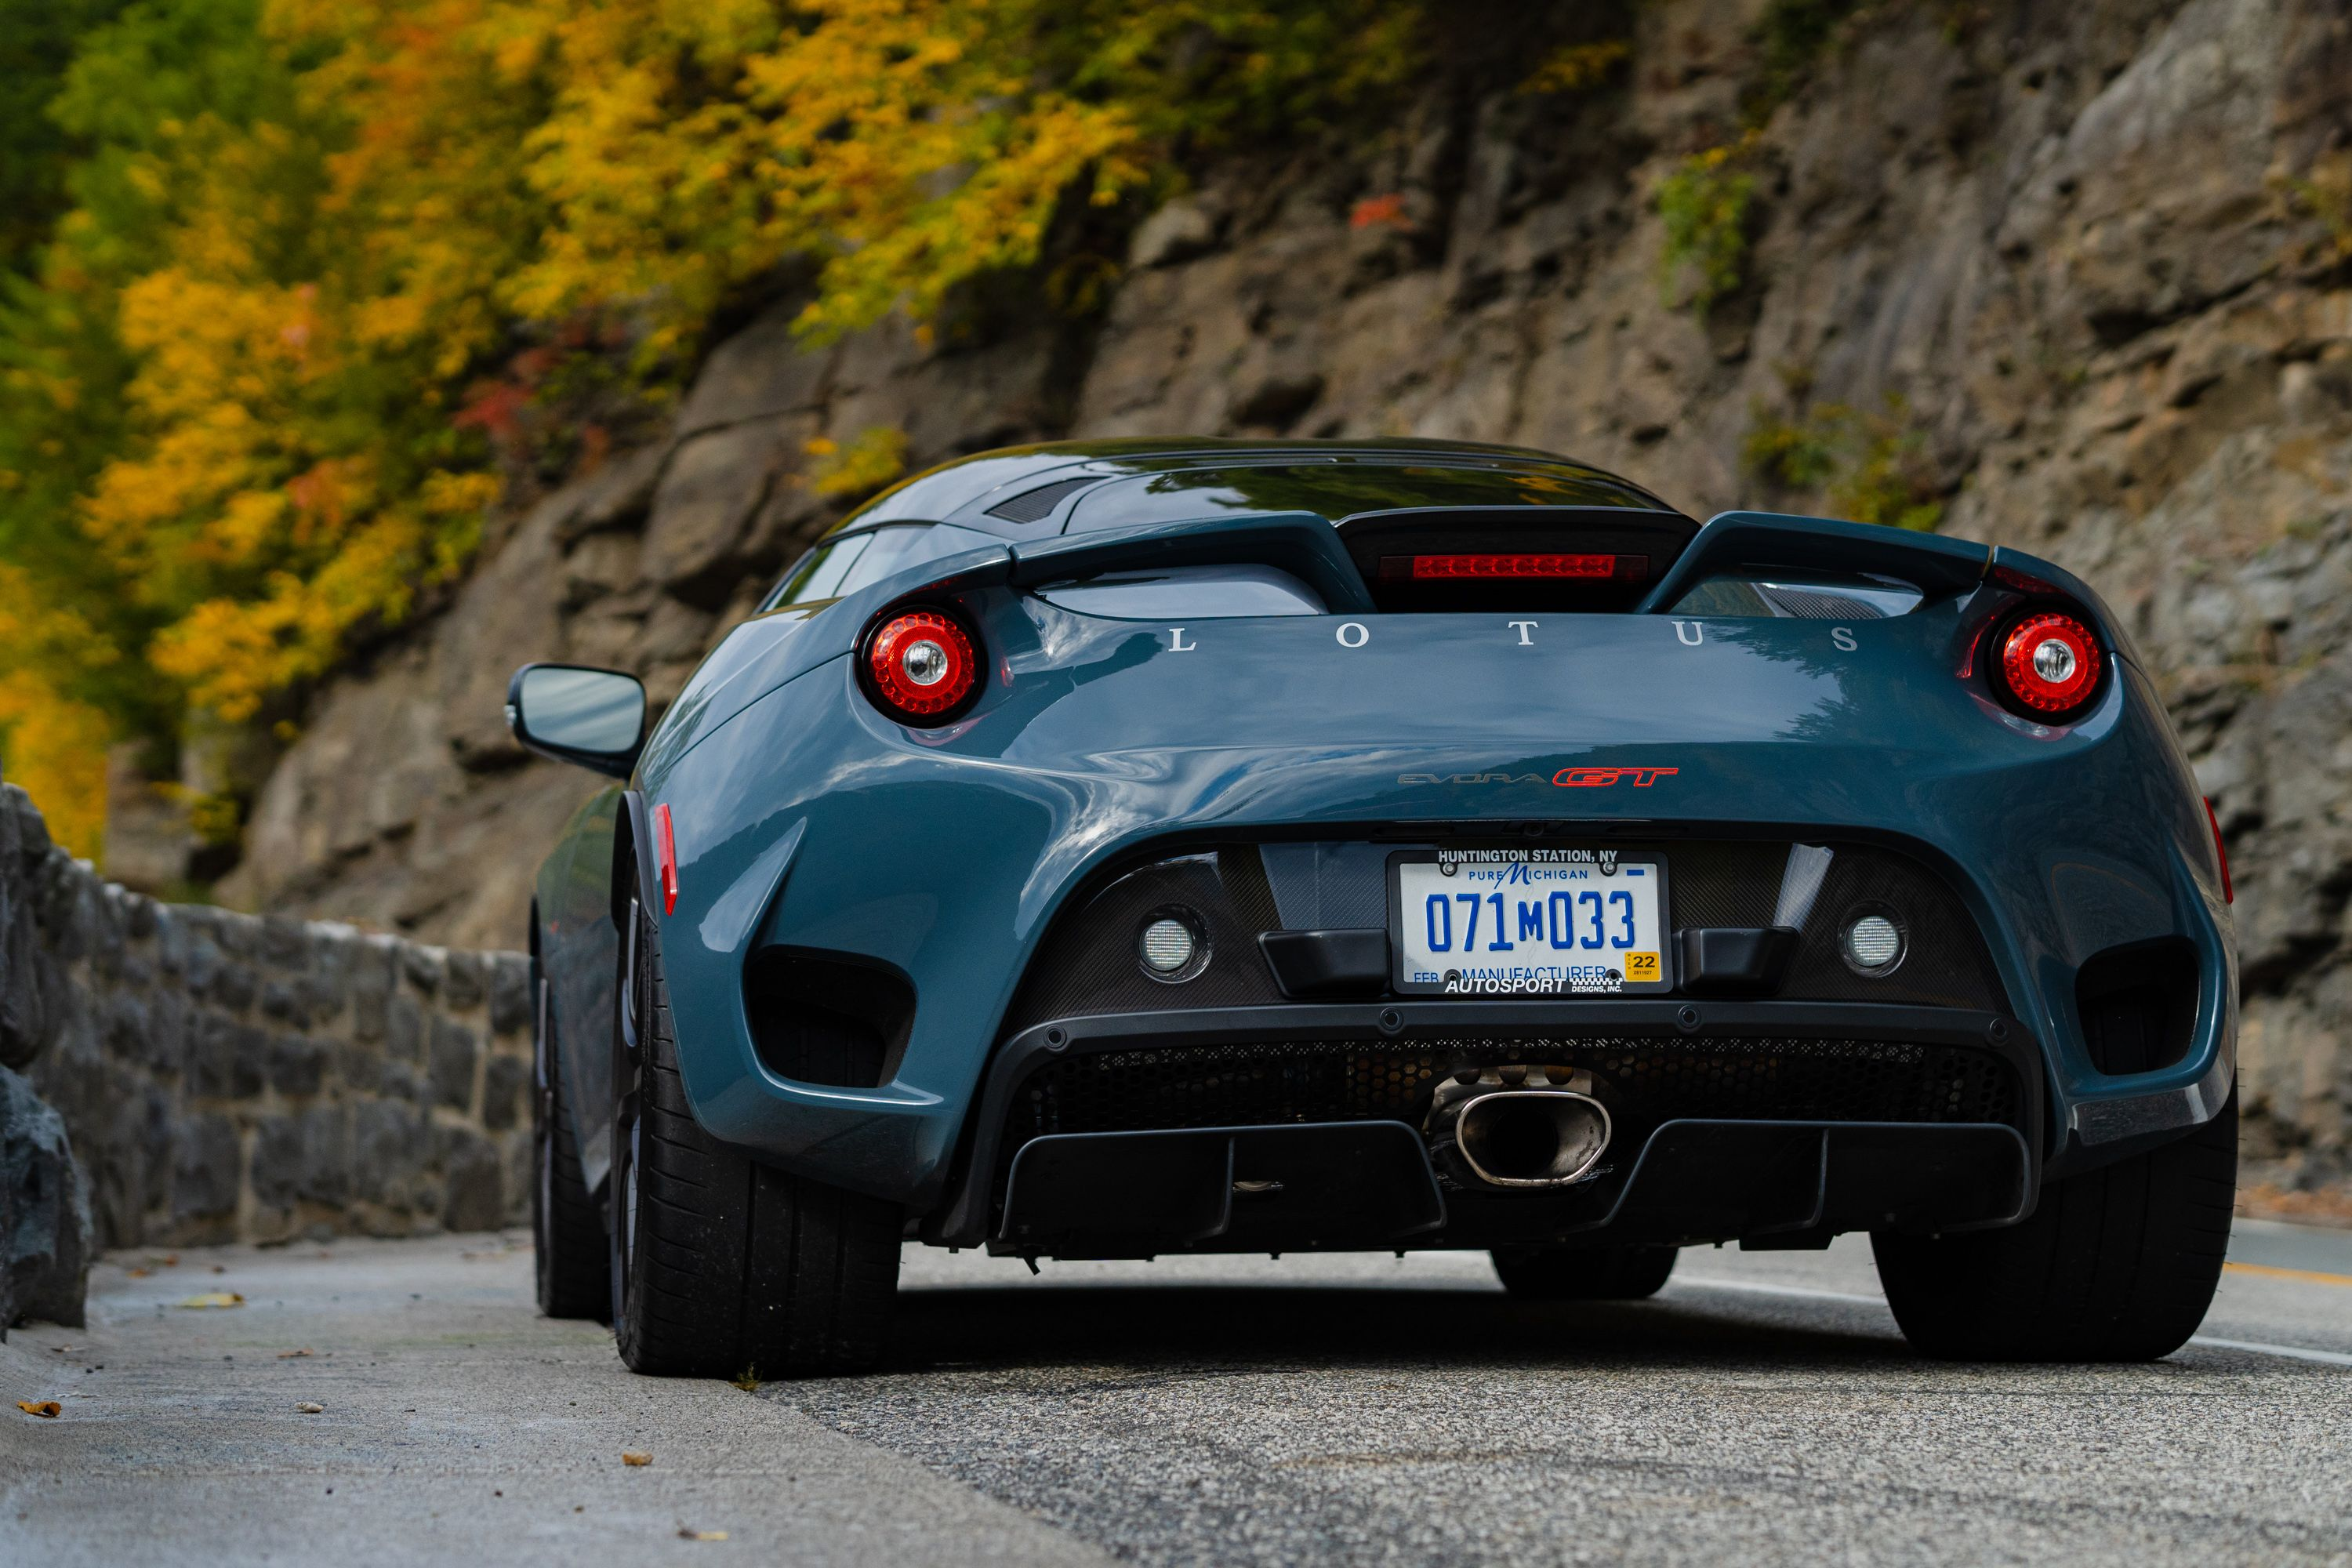 The 2020 Lotus Evora GT Lives Up to the Hype